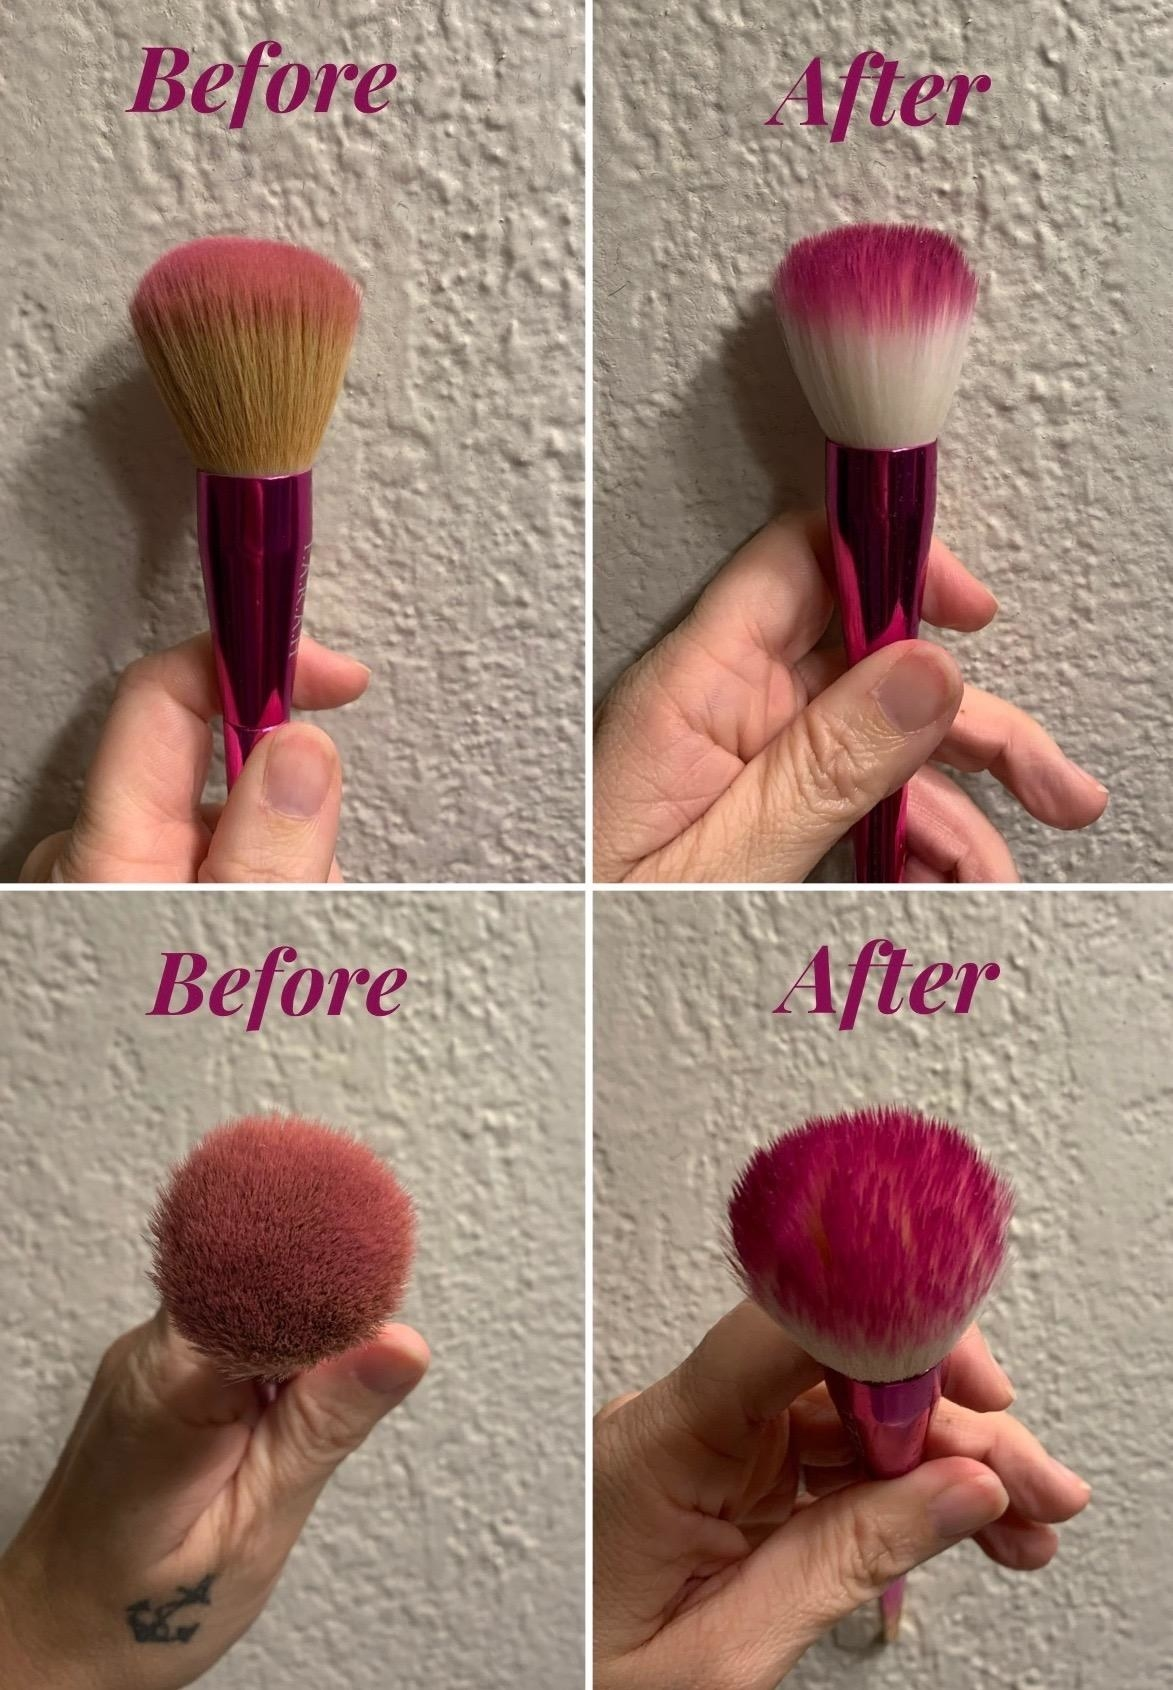 before and after photos of makeup brushes